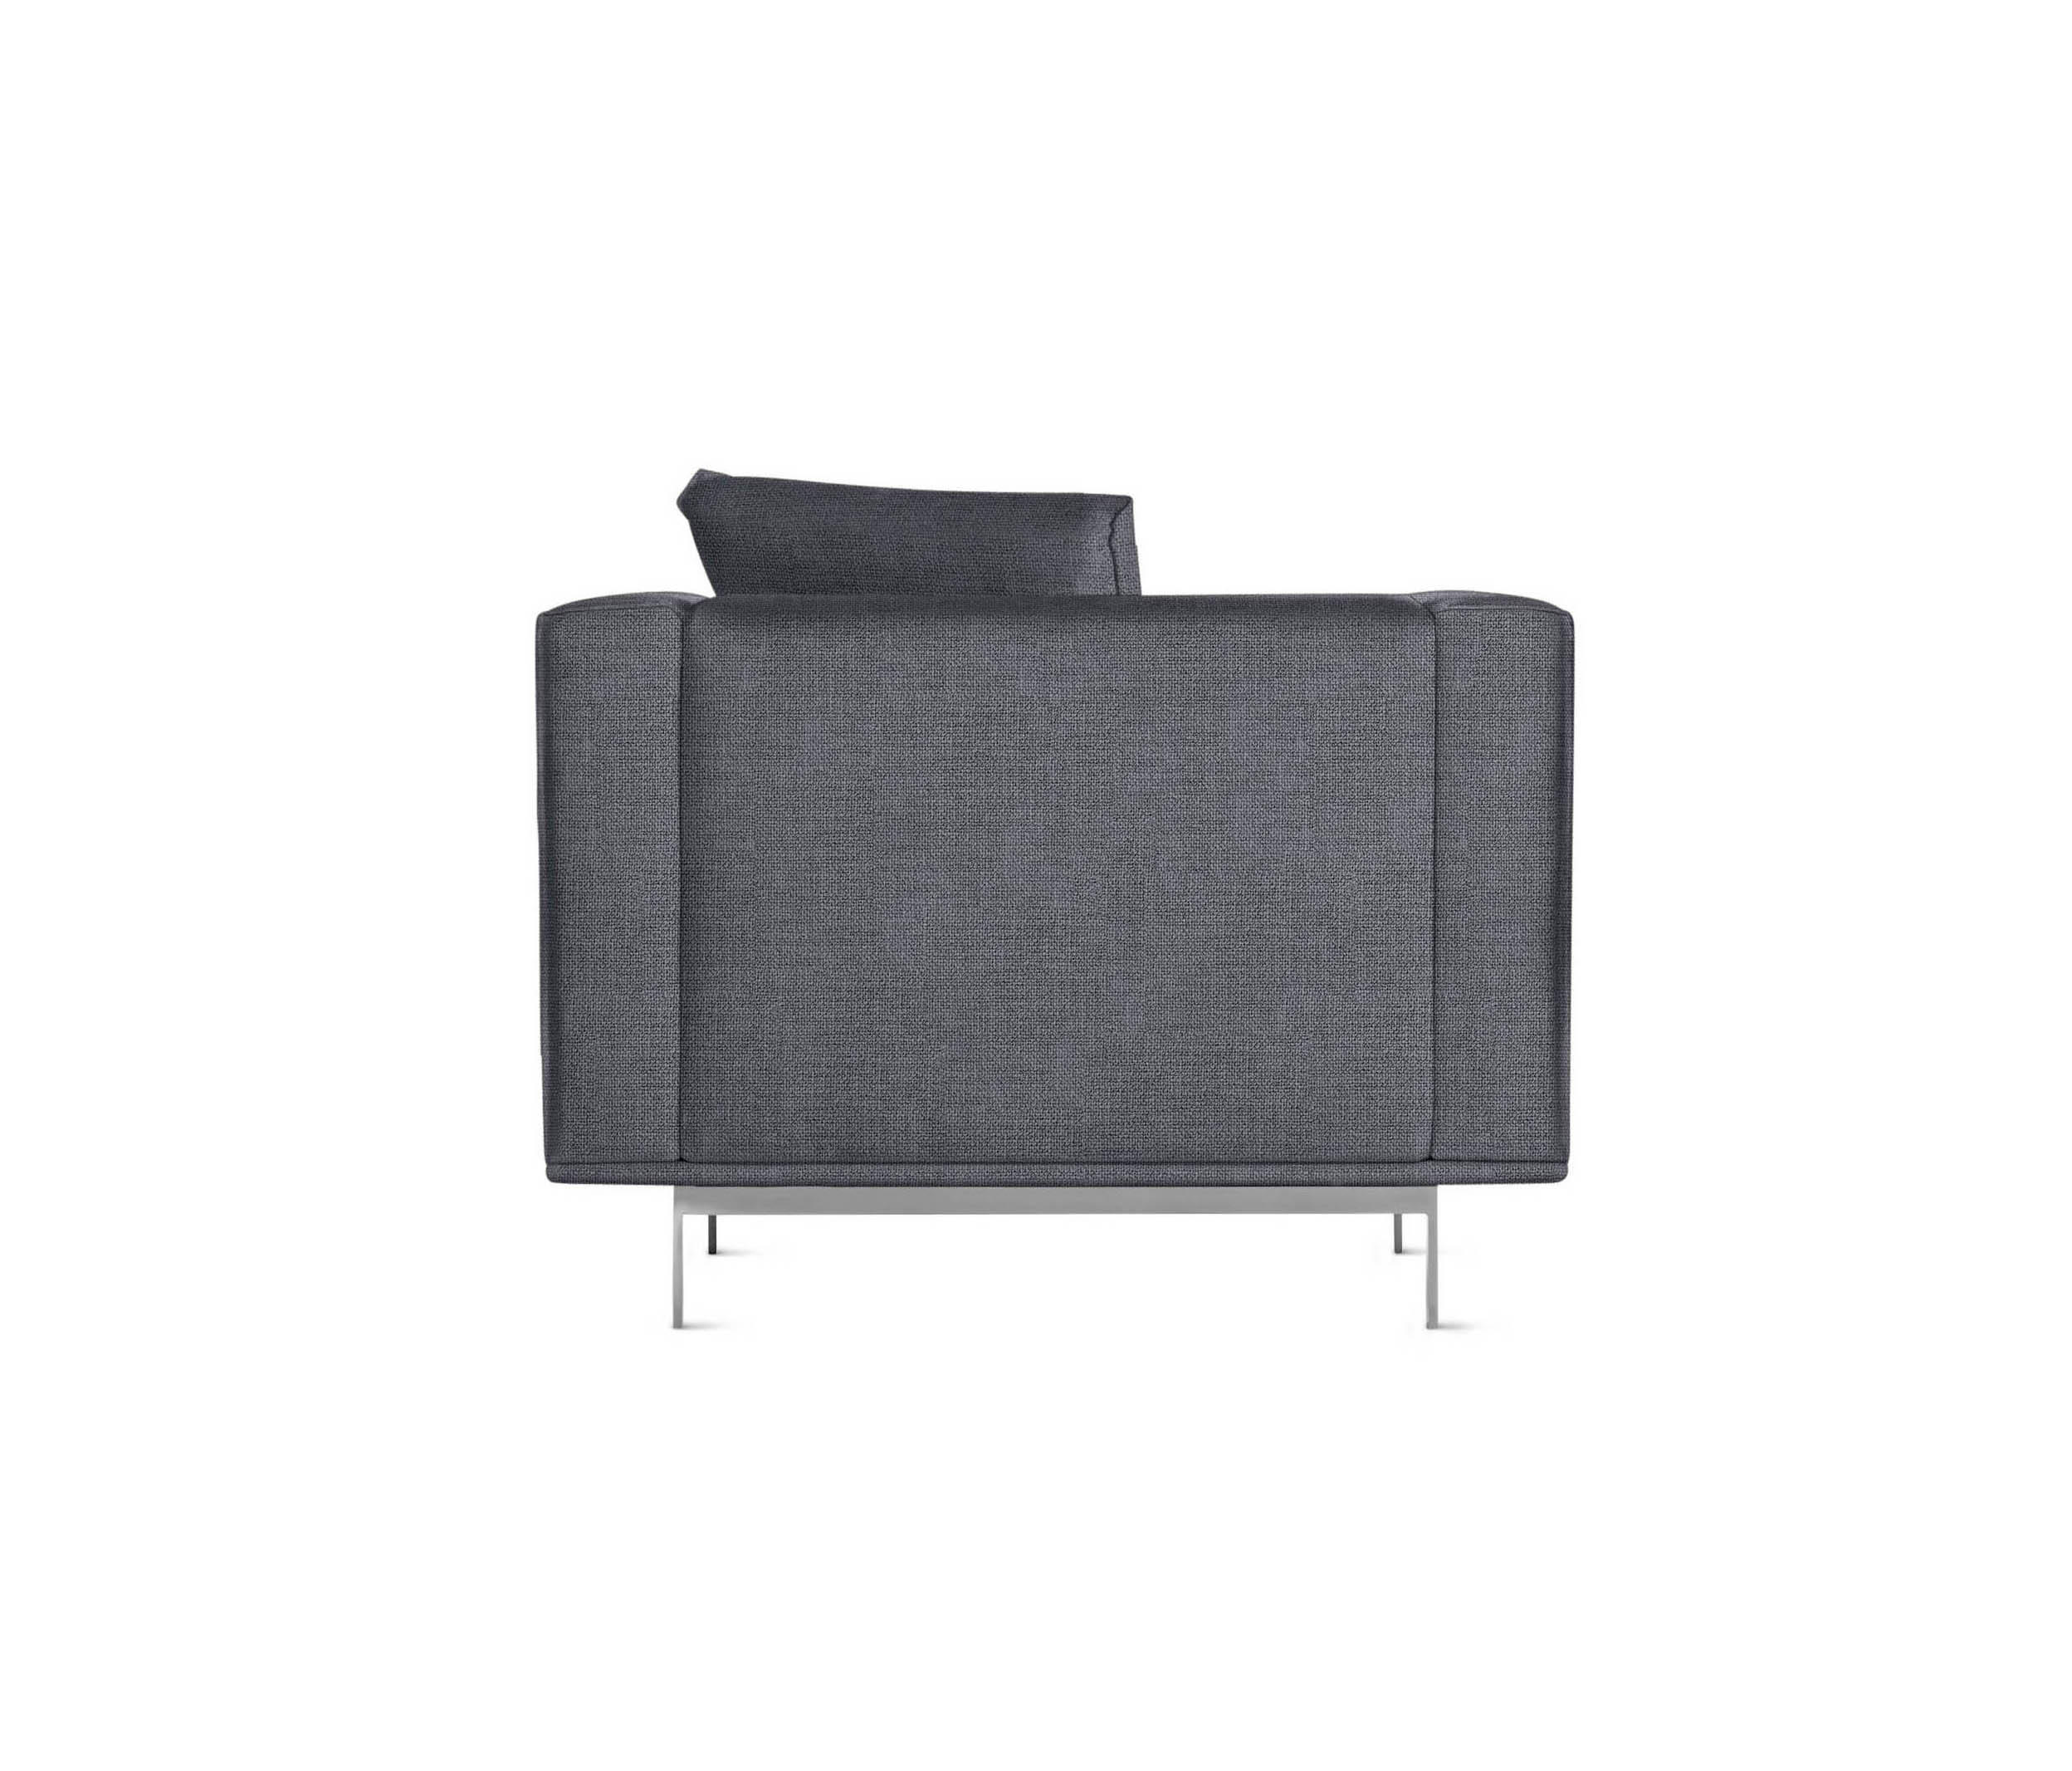 ... Bilsby Armchair In Fabric By Design Within Reach | Armchairs